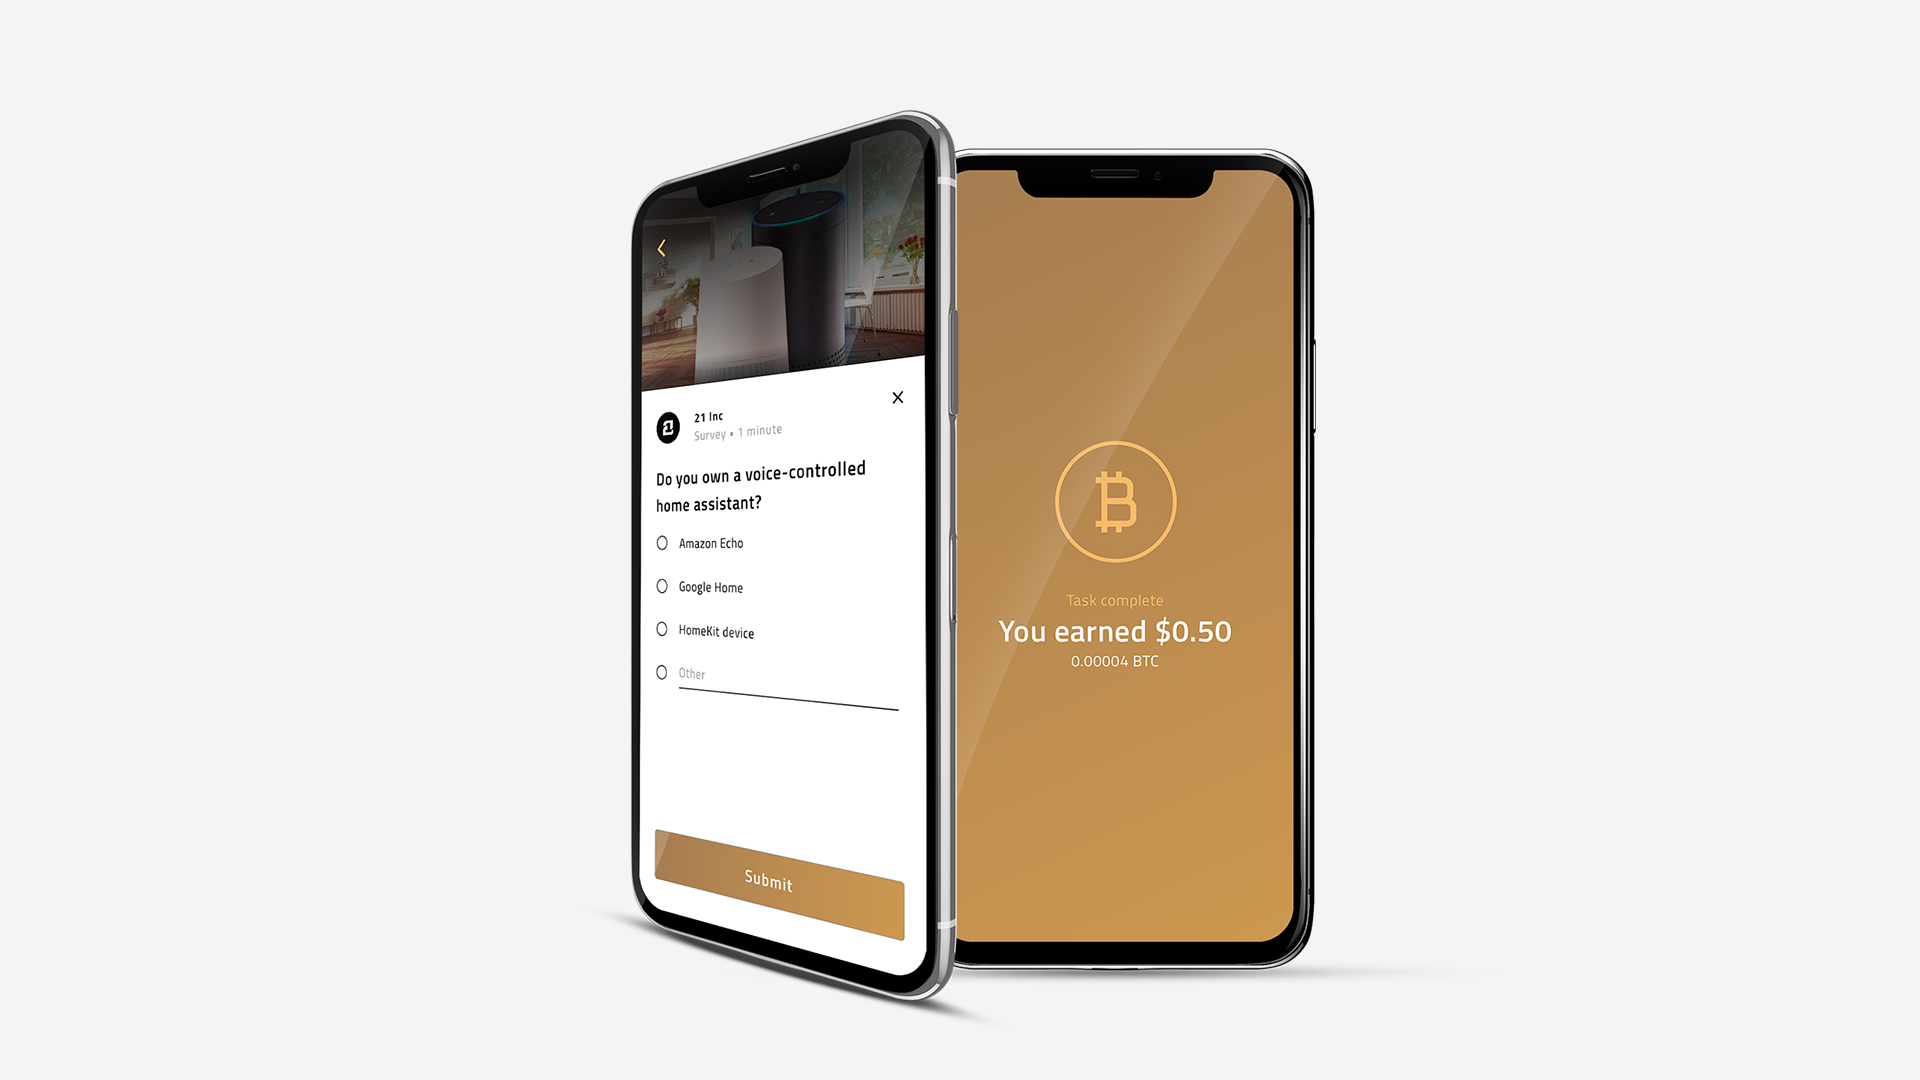 Earn Bitcoin by completing surveys on the 21 app